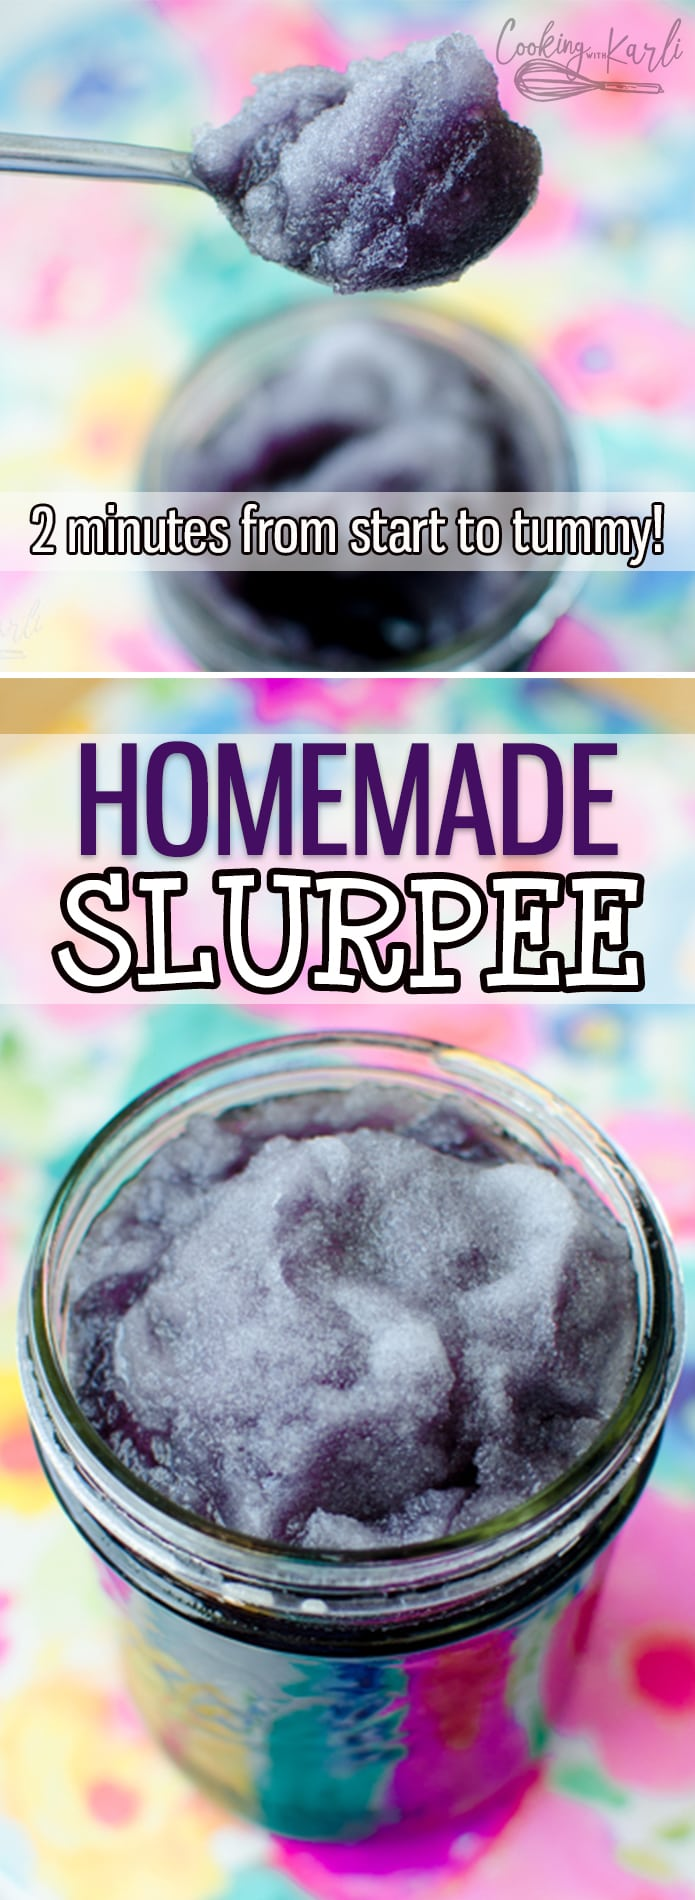 Homemade Slurpees will be the fastest, easiest and most refreshing treat this summer! All it takes is 4 ingredients and a minute or two. Unlimited flavors and endless possibilities!  Cooking with Karli  #slurpee #slushy #summer #homemade #diy